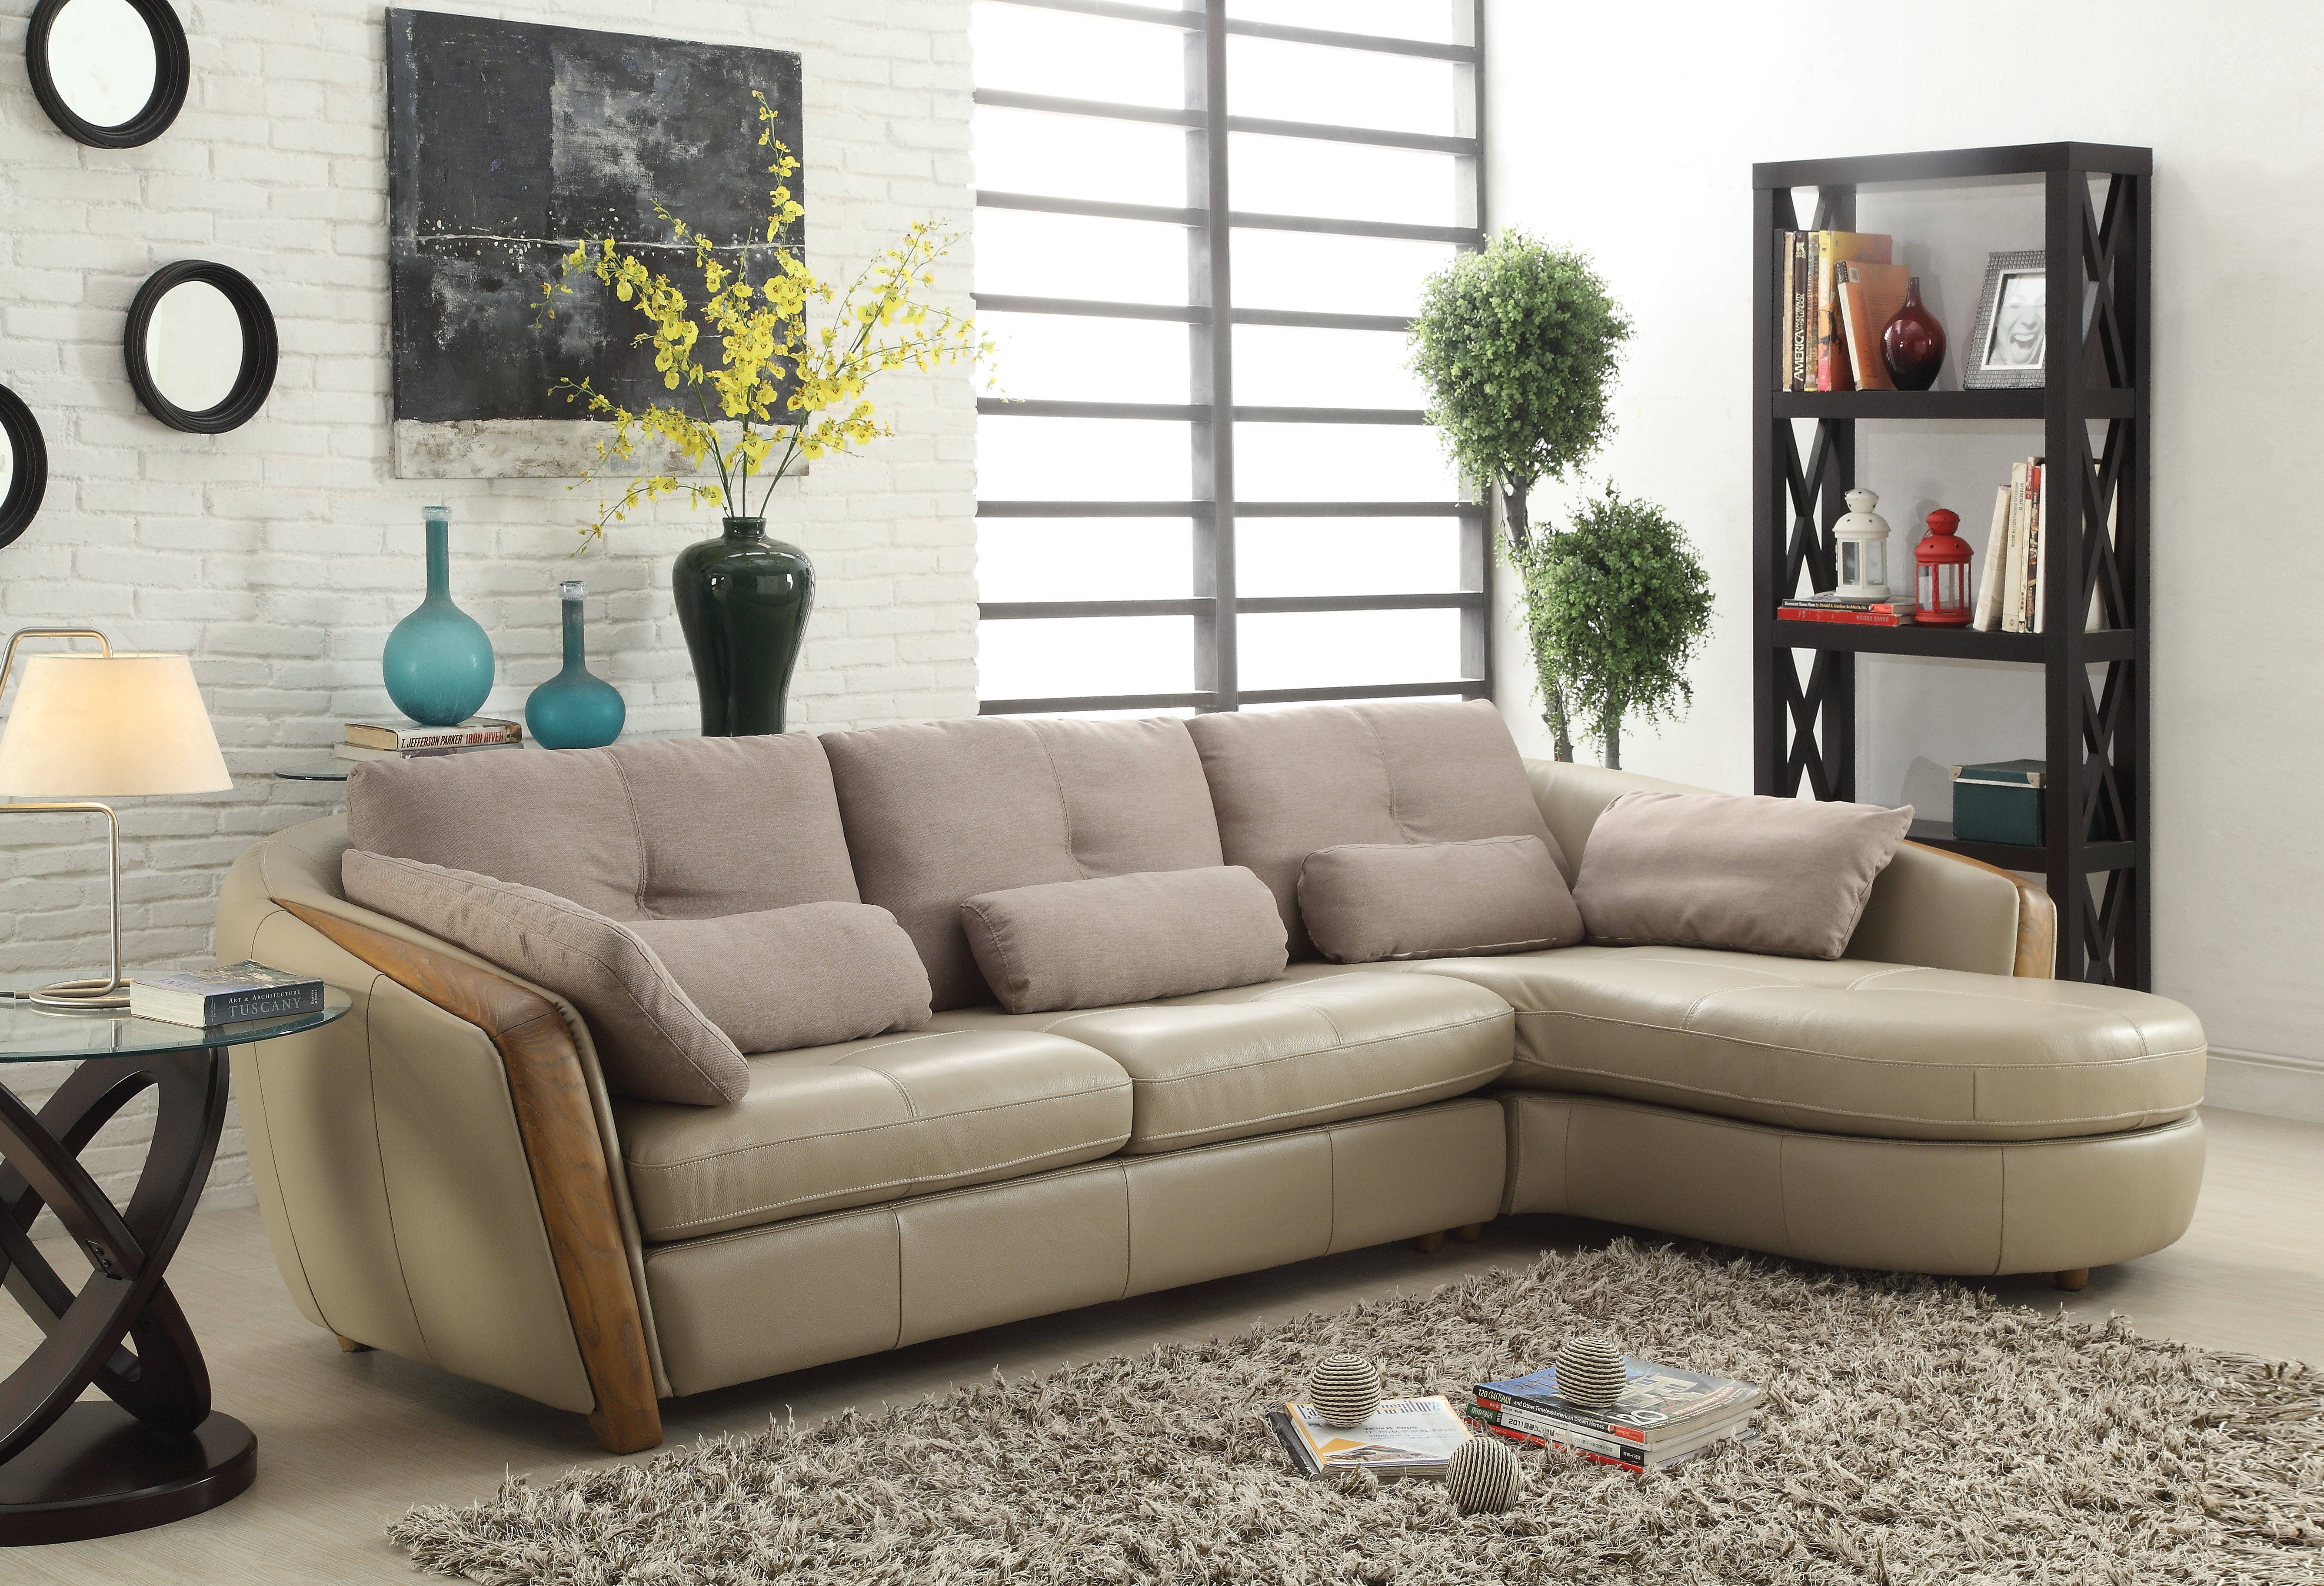 Acme Furniture Wilko Taupe Sectional Sofa With Pillows